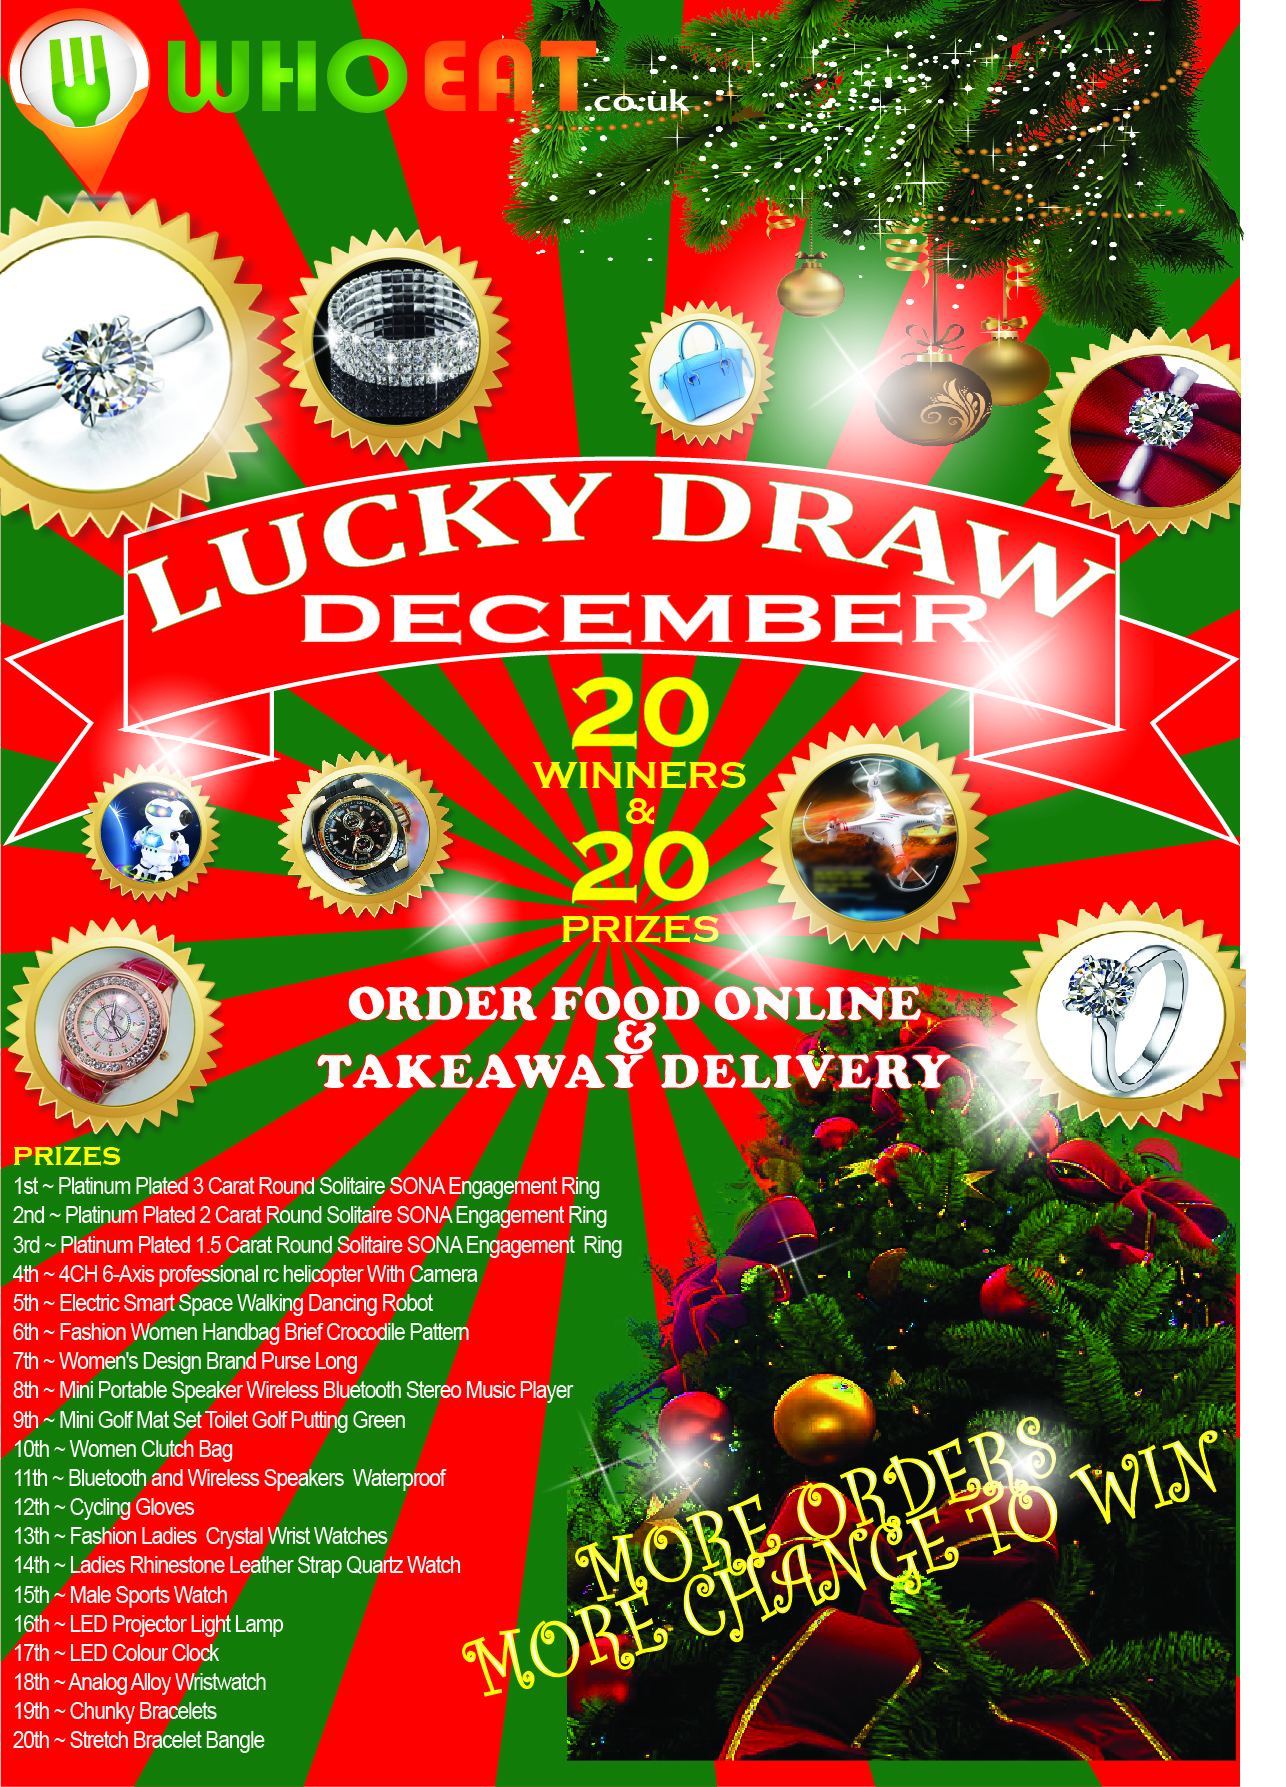 DEC LUCKYDRAW